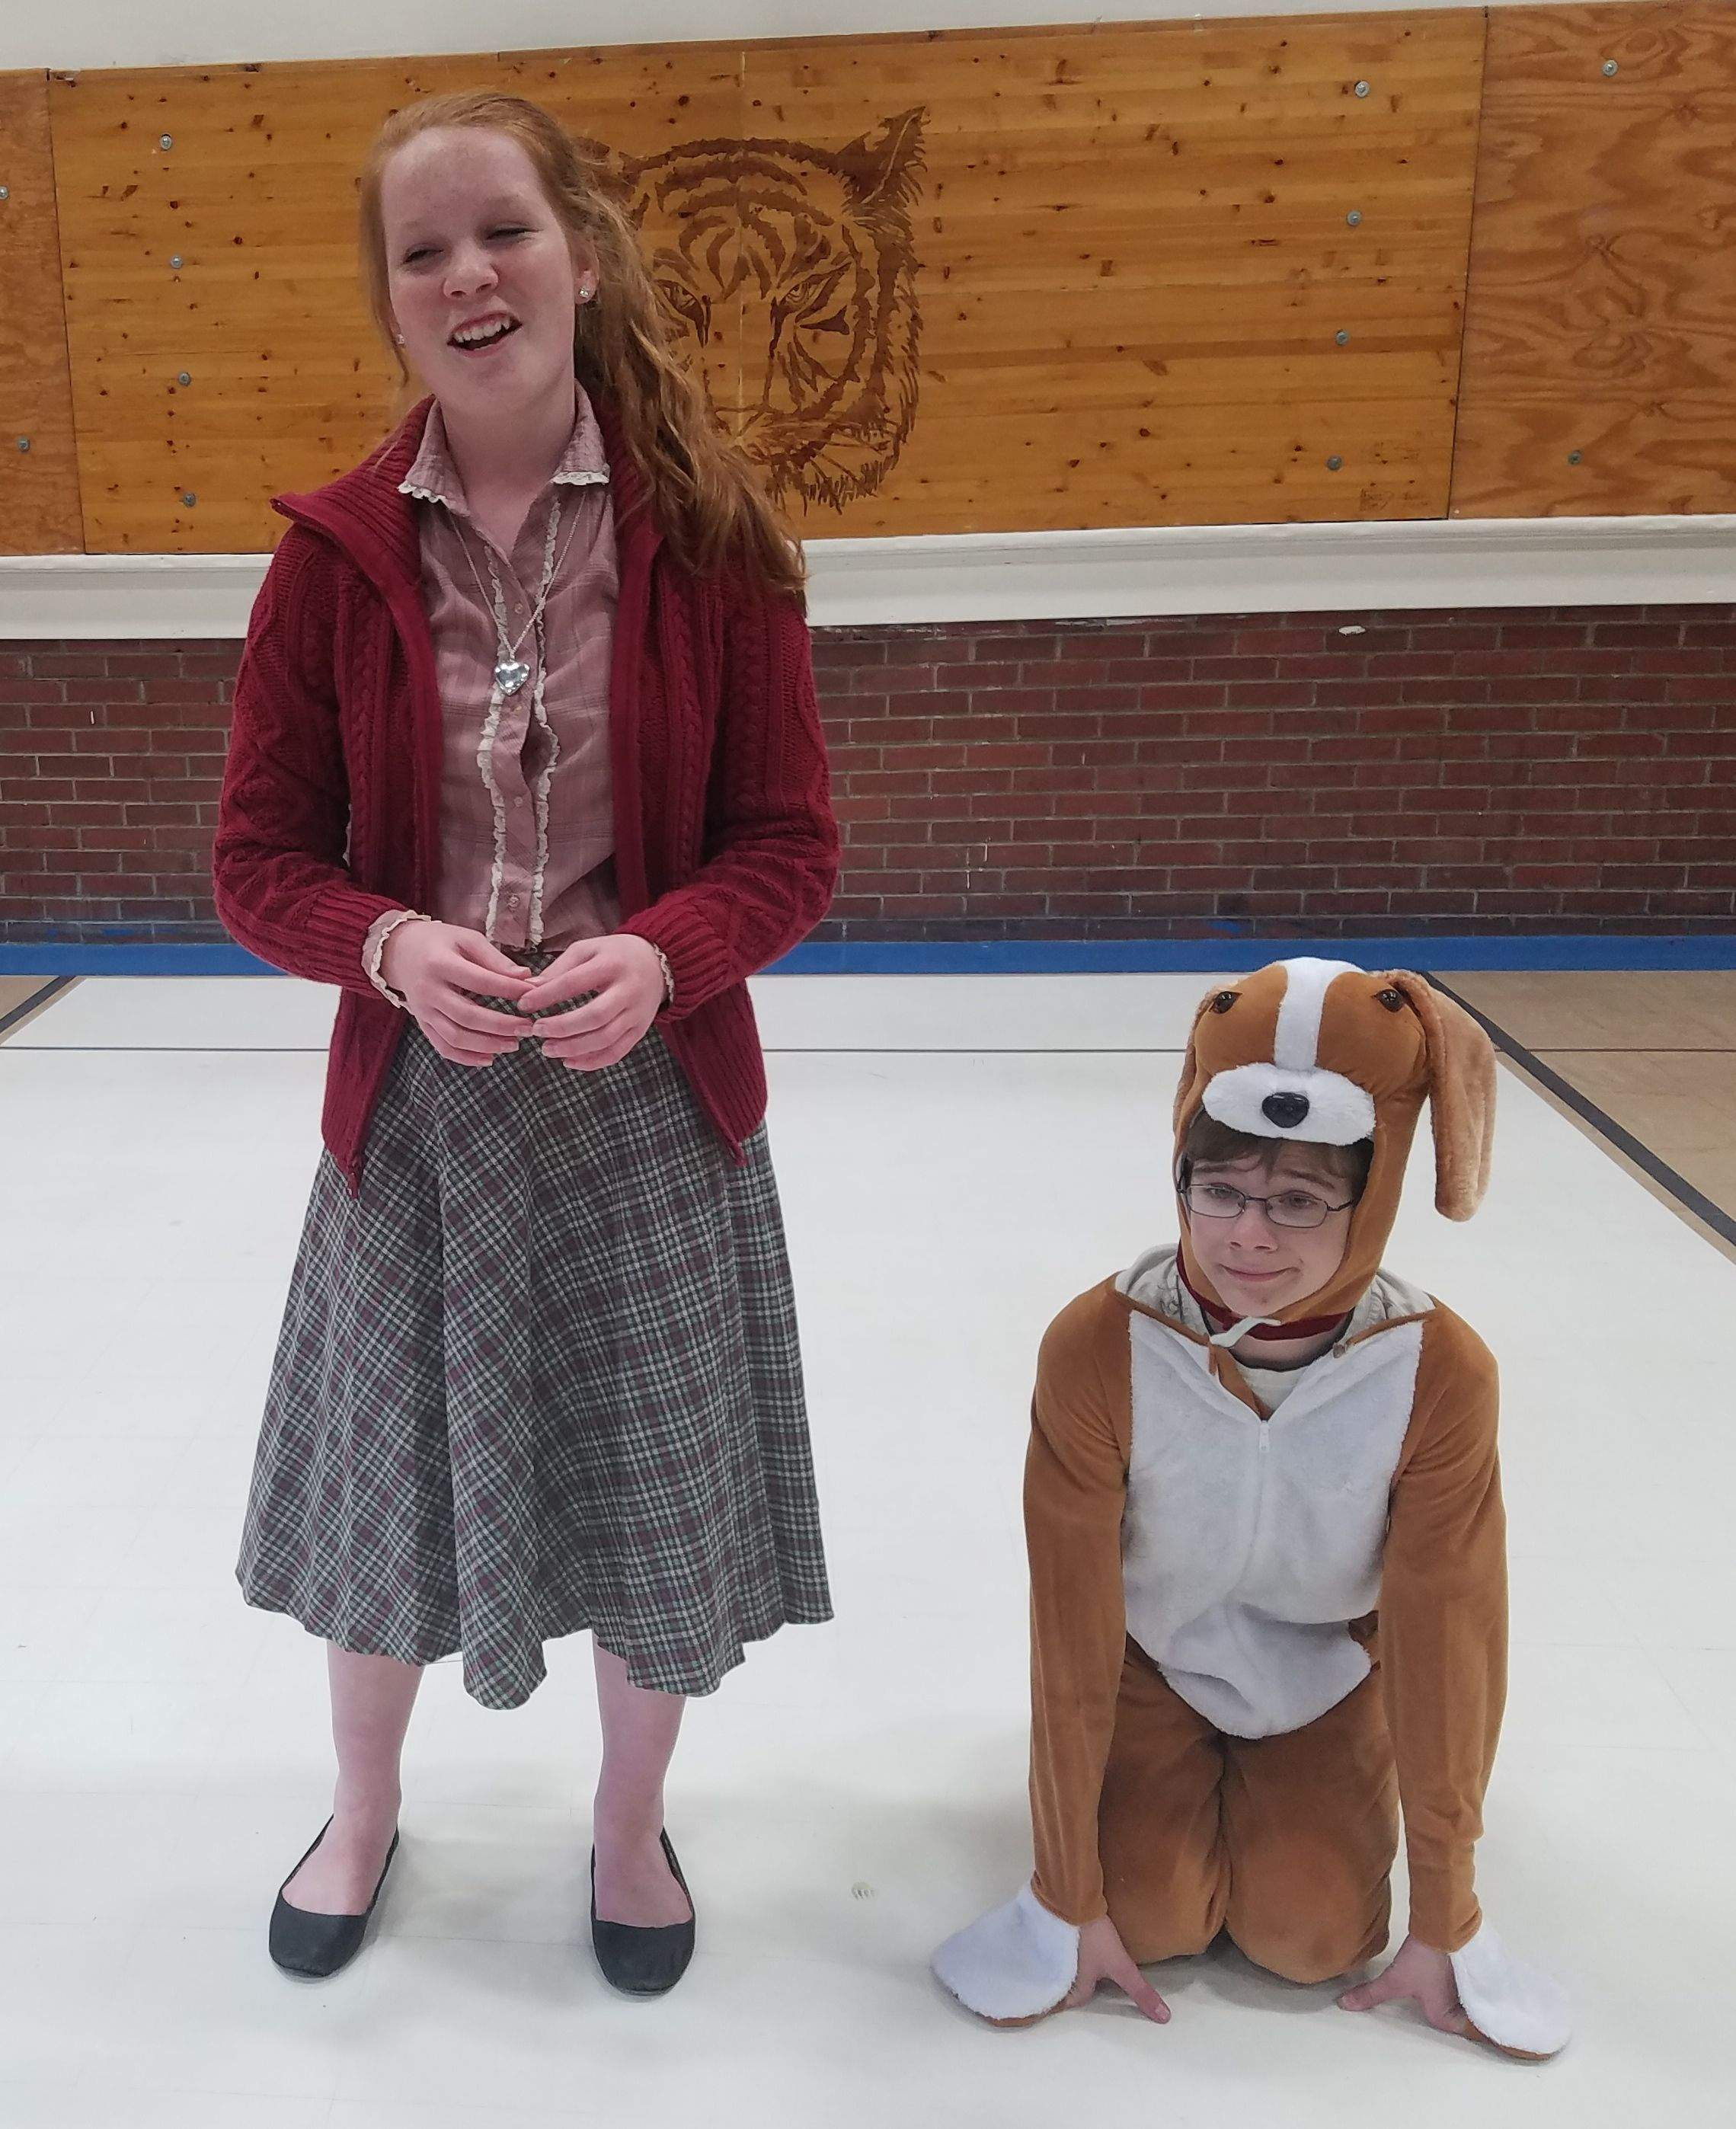 It may be a hard-knock life, but Thompsonville freshman Chloe Mays made it look easy during Monday's dress rehearsal. Mays, pictured here with eigth-grader Aaron Wade as 'Sandy,' was in character as the lovable orphan Annie and rehearsing the signature song 'Tomorrow' from the Broadway hit. The Thompsonville Schools Drama Department will present 'Annie Jr.' at 7 p.m. March  31 to April 1 at Community of Christ Church in Thompsonville. Tickets are $5 for adults, $3 for ages 4 to 17, and free to those age 3 and under. The show is directed by junior high social studies teacher Kim Ward. This will mark Ward's directorial debut, but she is no stranger to the stage, having acted in several productions at Johnston City High School.